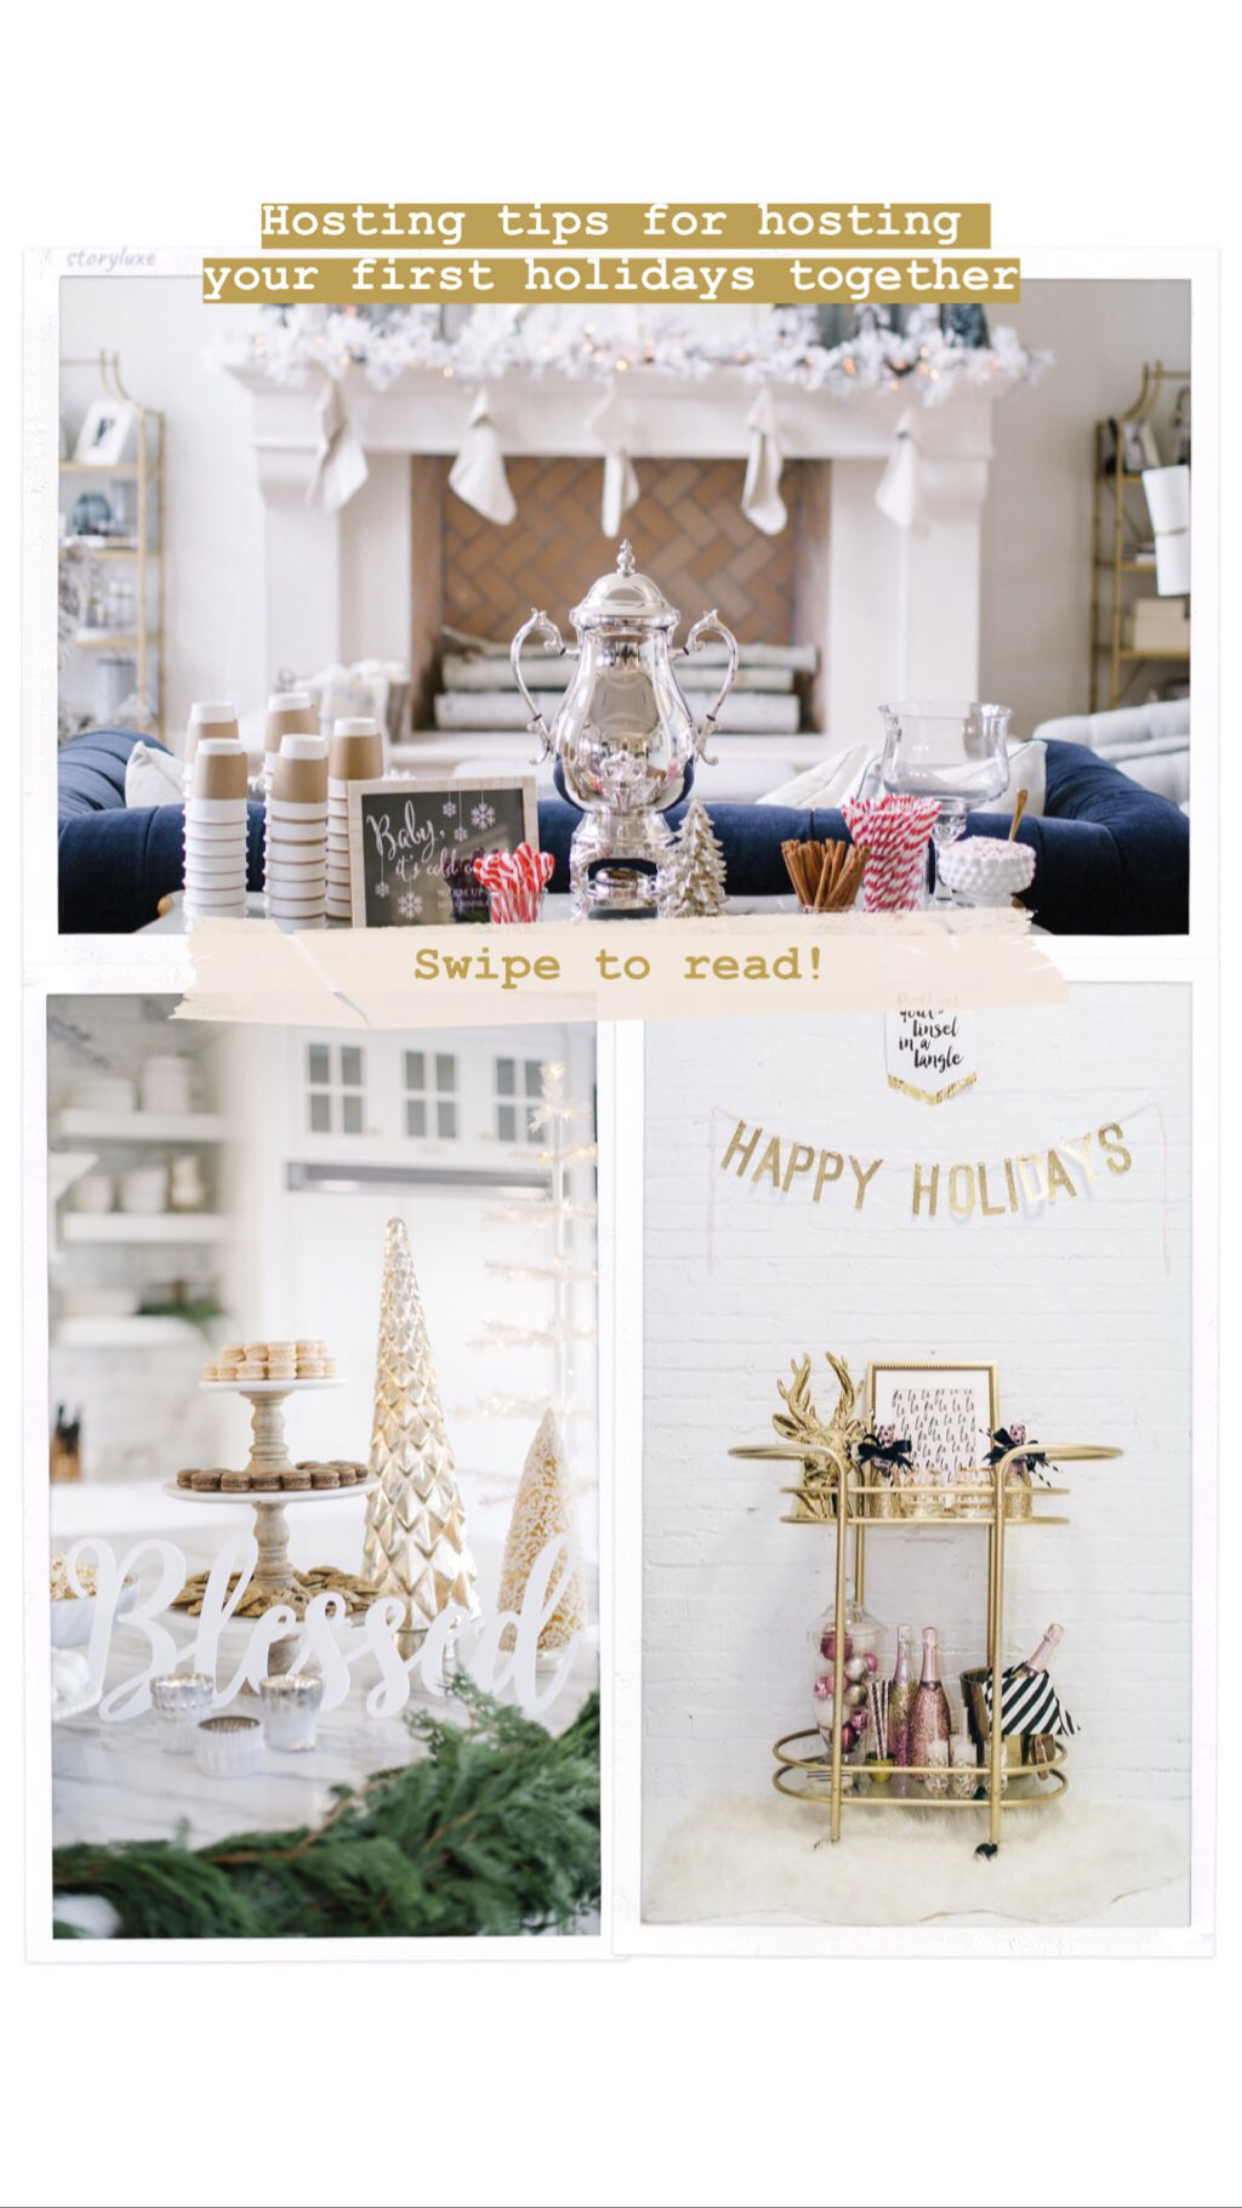 HOSTING TIPS FOR YOUR FIRST HOLIDAY TOGETHER (With images